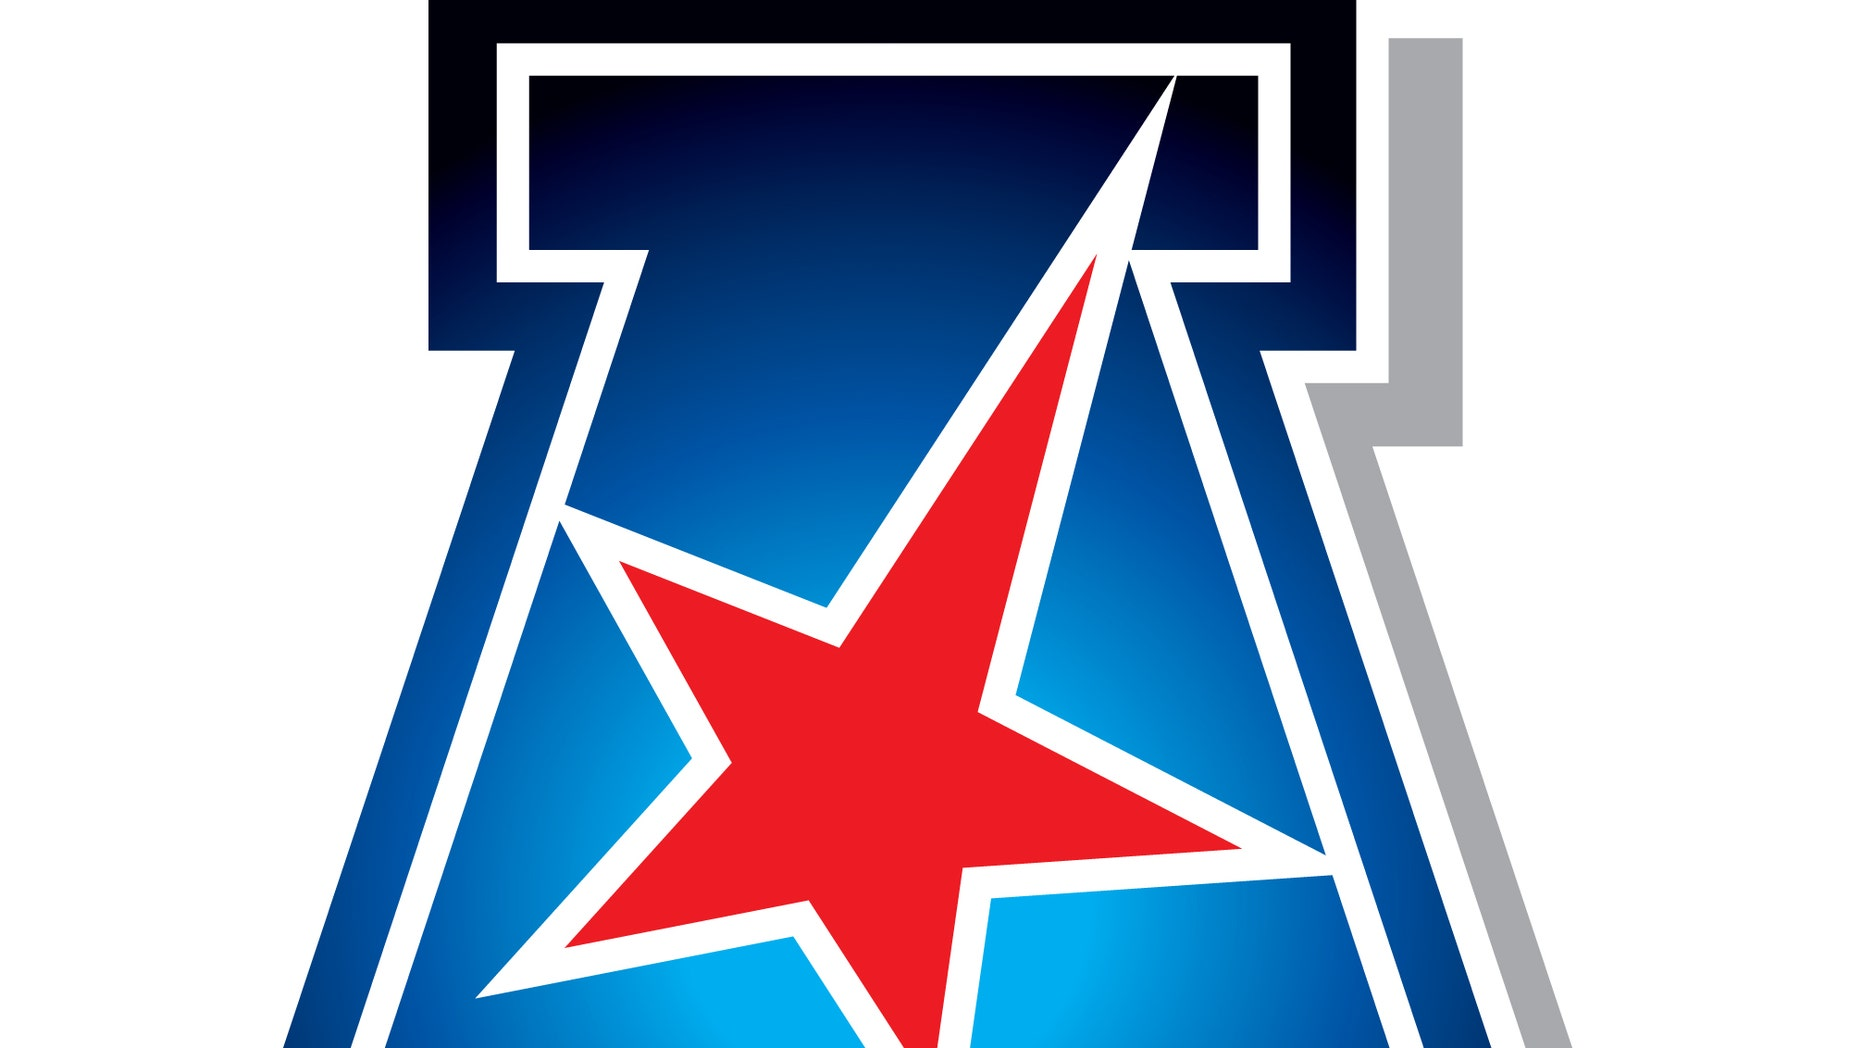 This image provided by the Big East, Thursday, May 30, 2013, shows the American Athletic Conference logo. The conference formally known as the Big East released its logo as part of the rebranding of the new conference, which will begin conpetition this fall. (AP Photo/Big East)